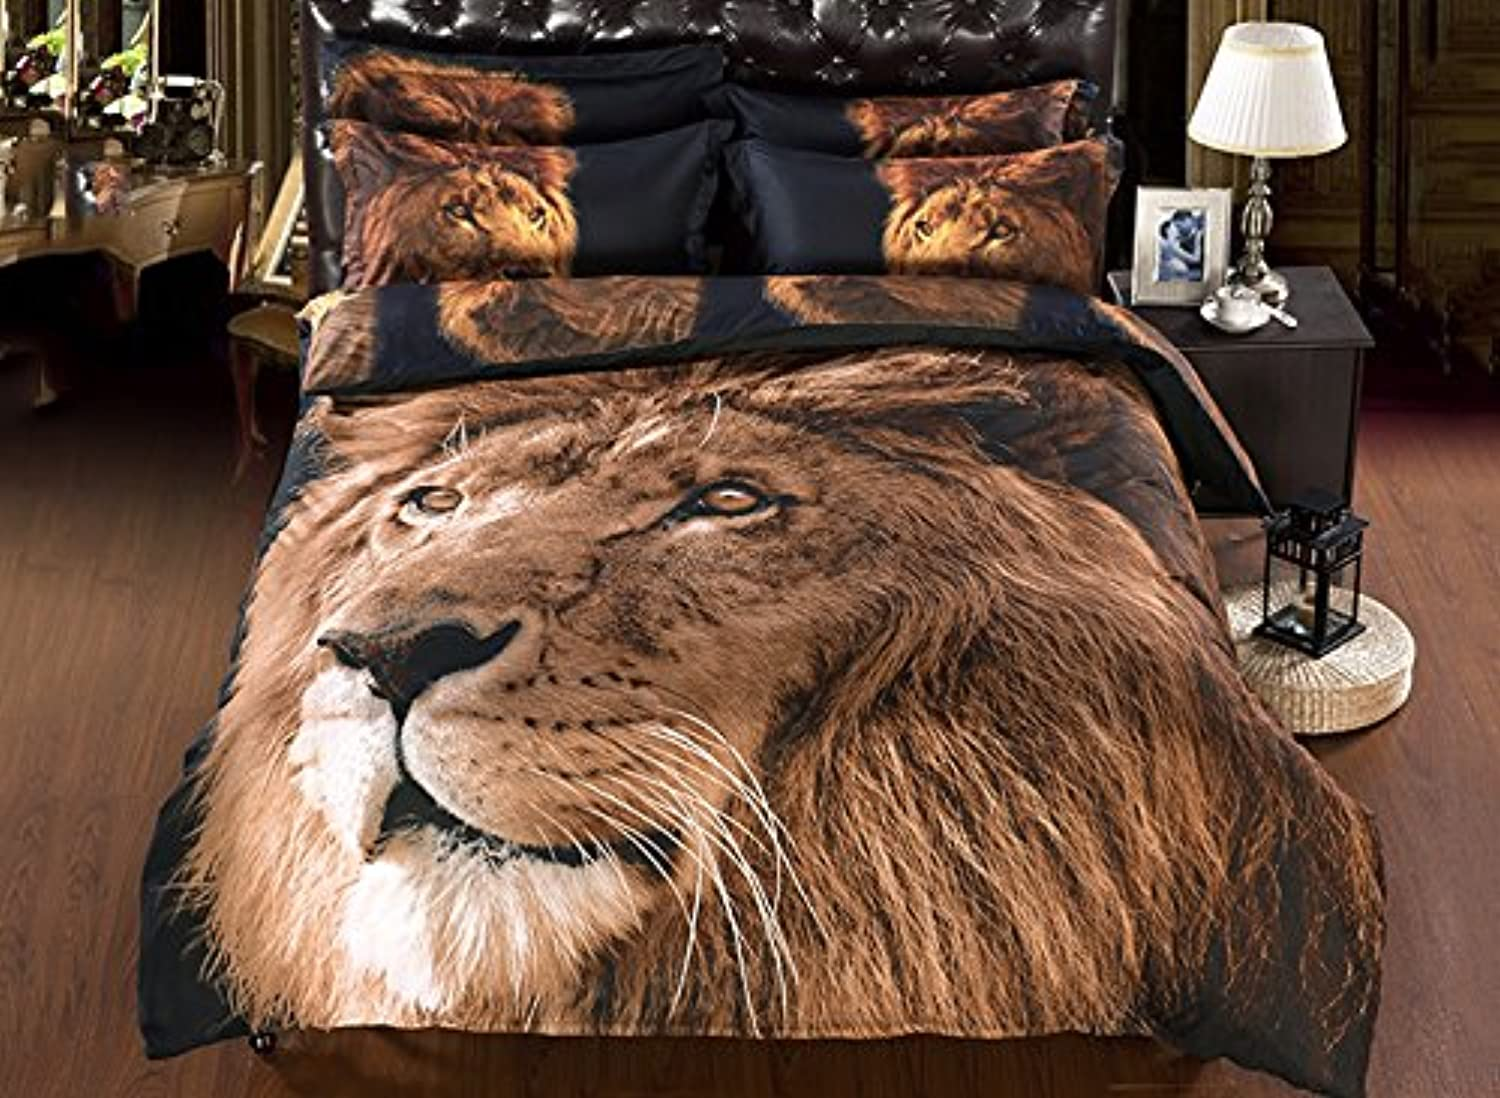 Babycare Pro 3D Bedding Sets Queen Size Brown Lion,Duvet Cover Set with Flat Sheet Queen Polyester 4 Pieces,2 Pillowcases,1 Duvet Cover,1 Flat Sheet, No Comforter,(Queen)